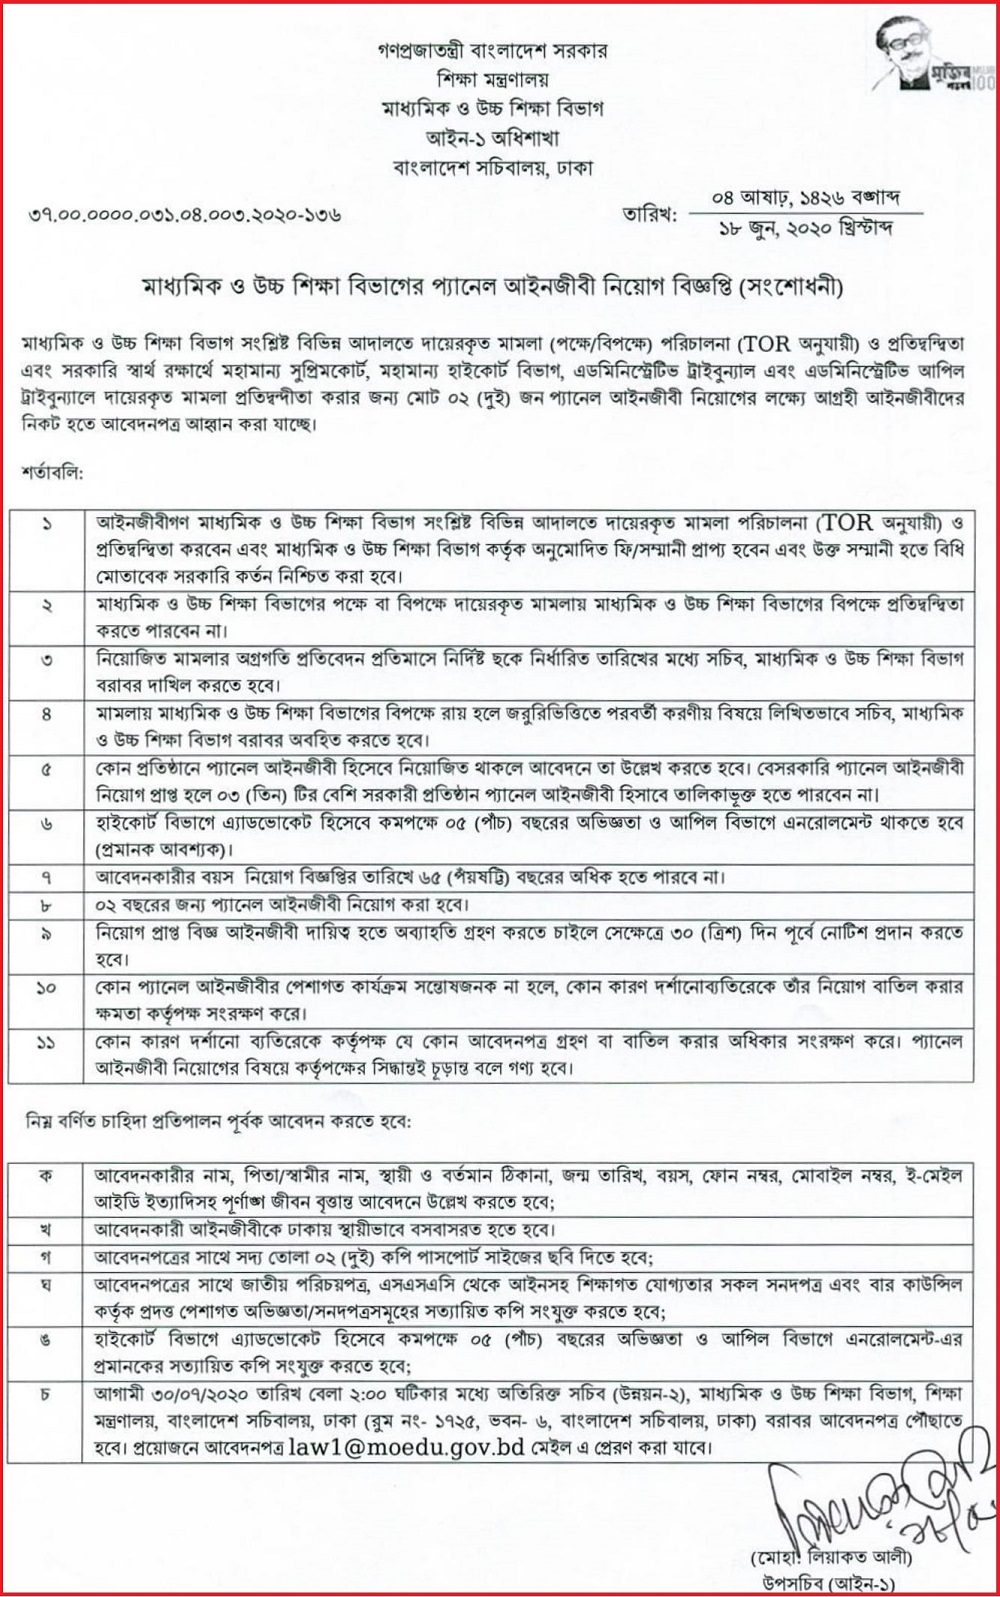 SHED Job Circular Apply 2020 - shed.gov.bd